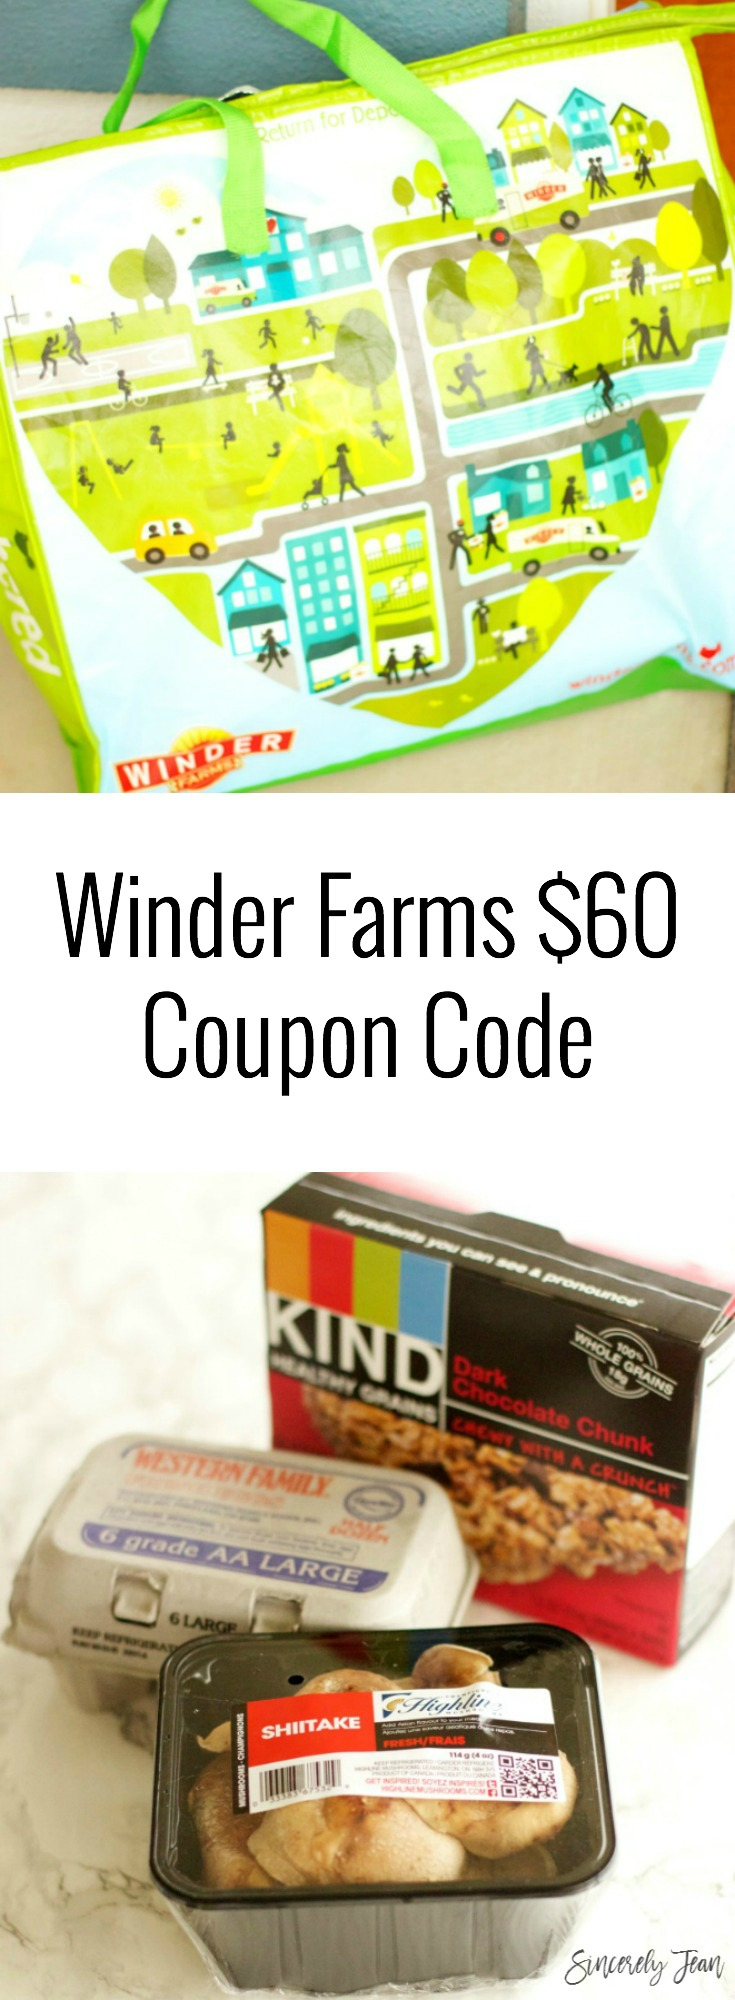 Exclusive Winder Farms Coupon Code Sincerely Jean